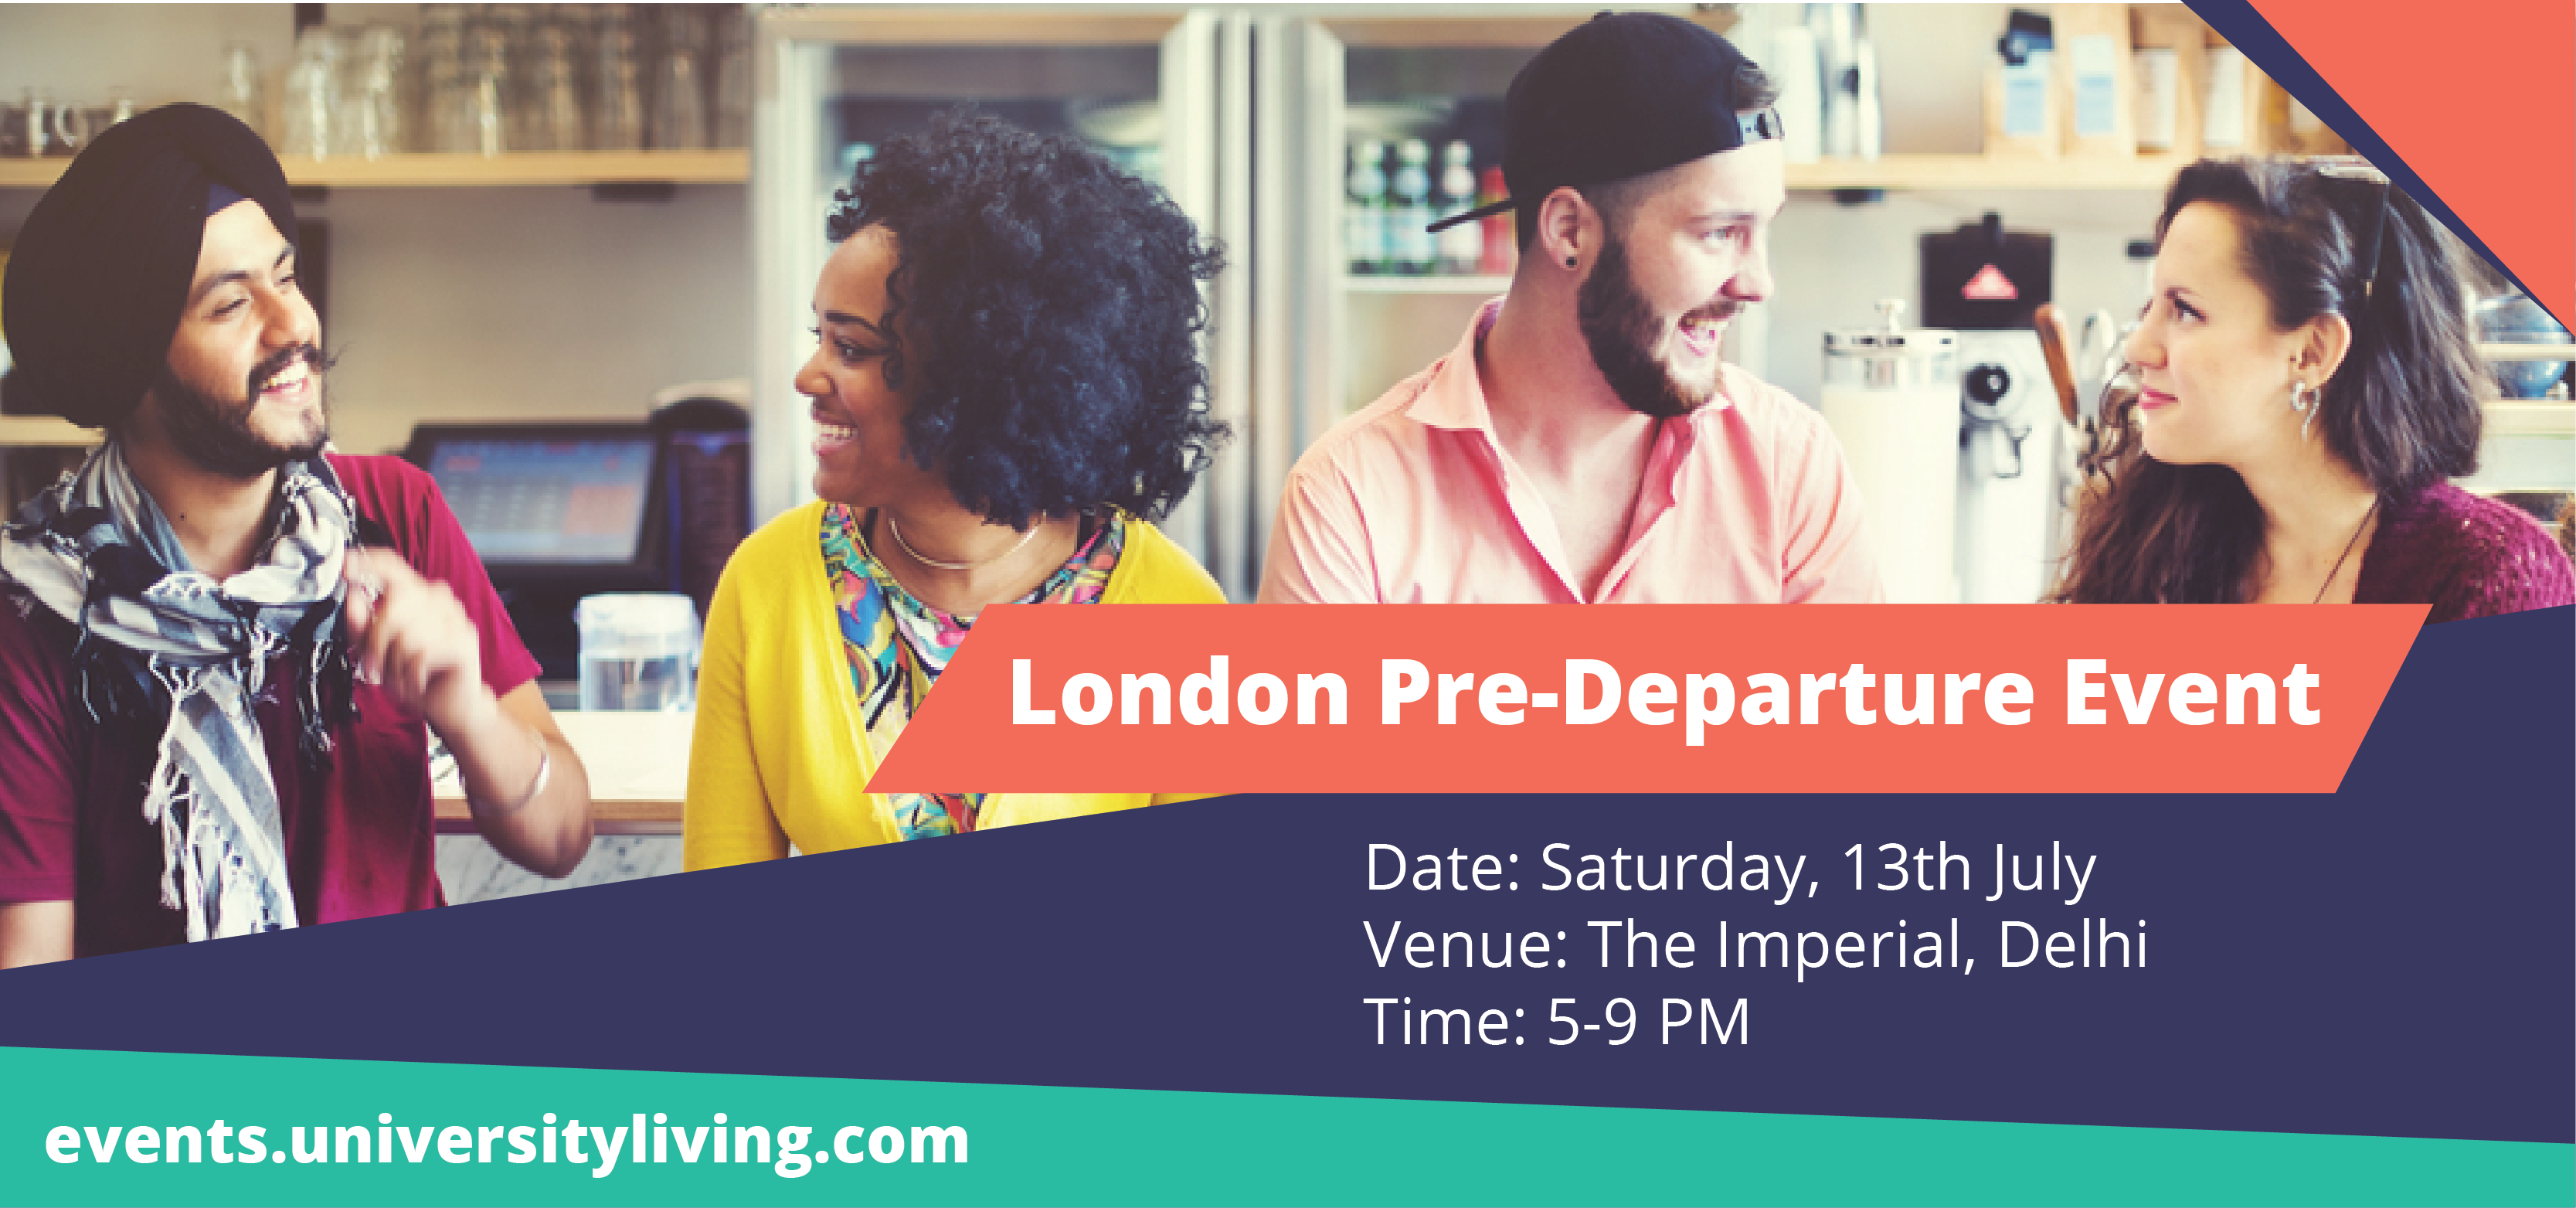 Details of the London Pre-Departure Event